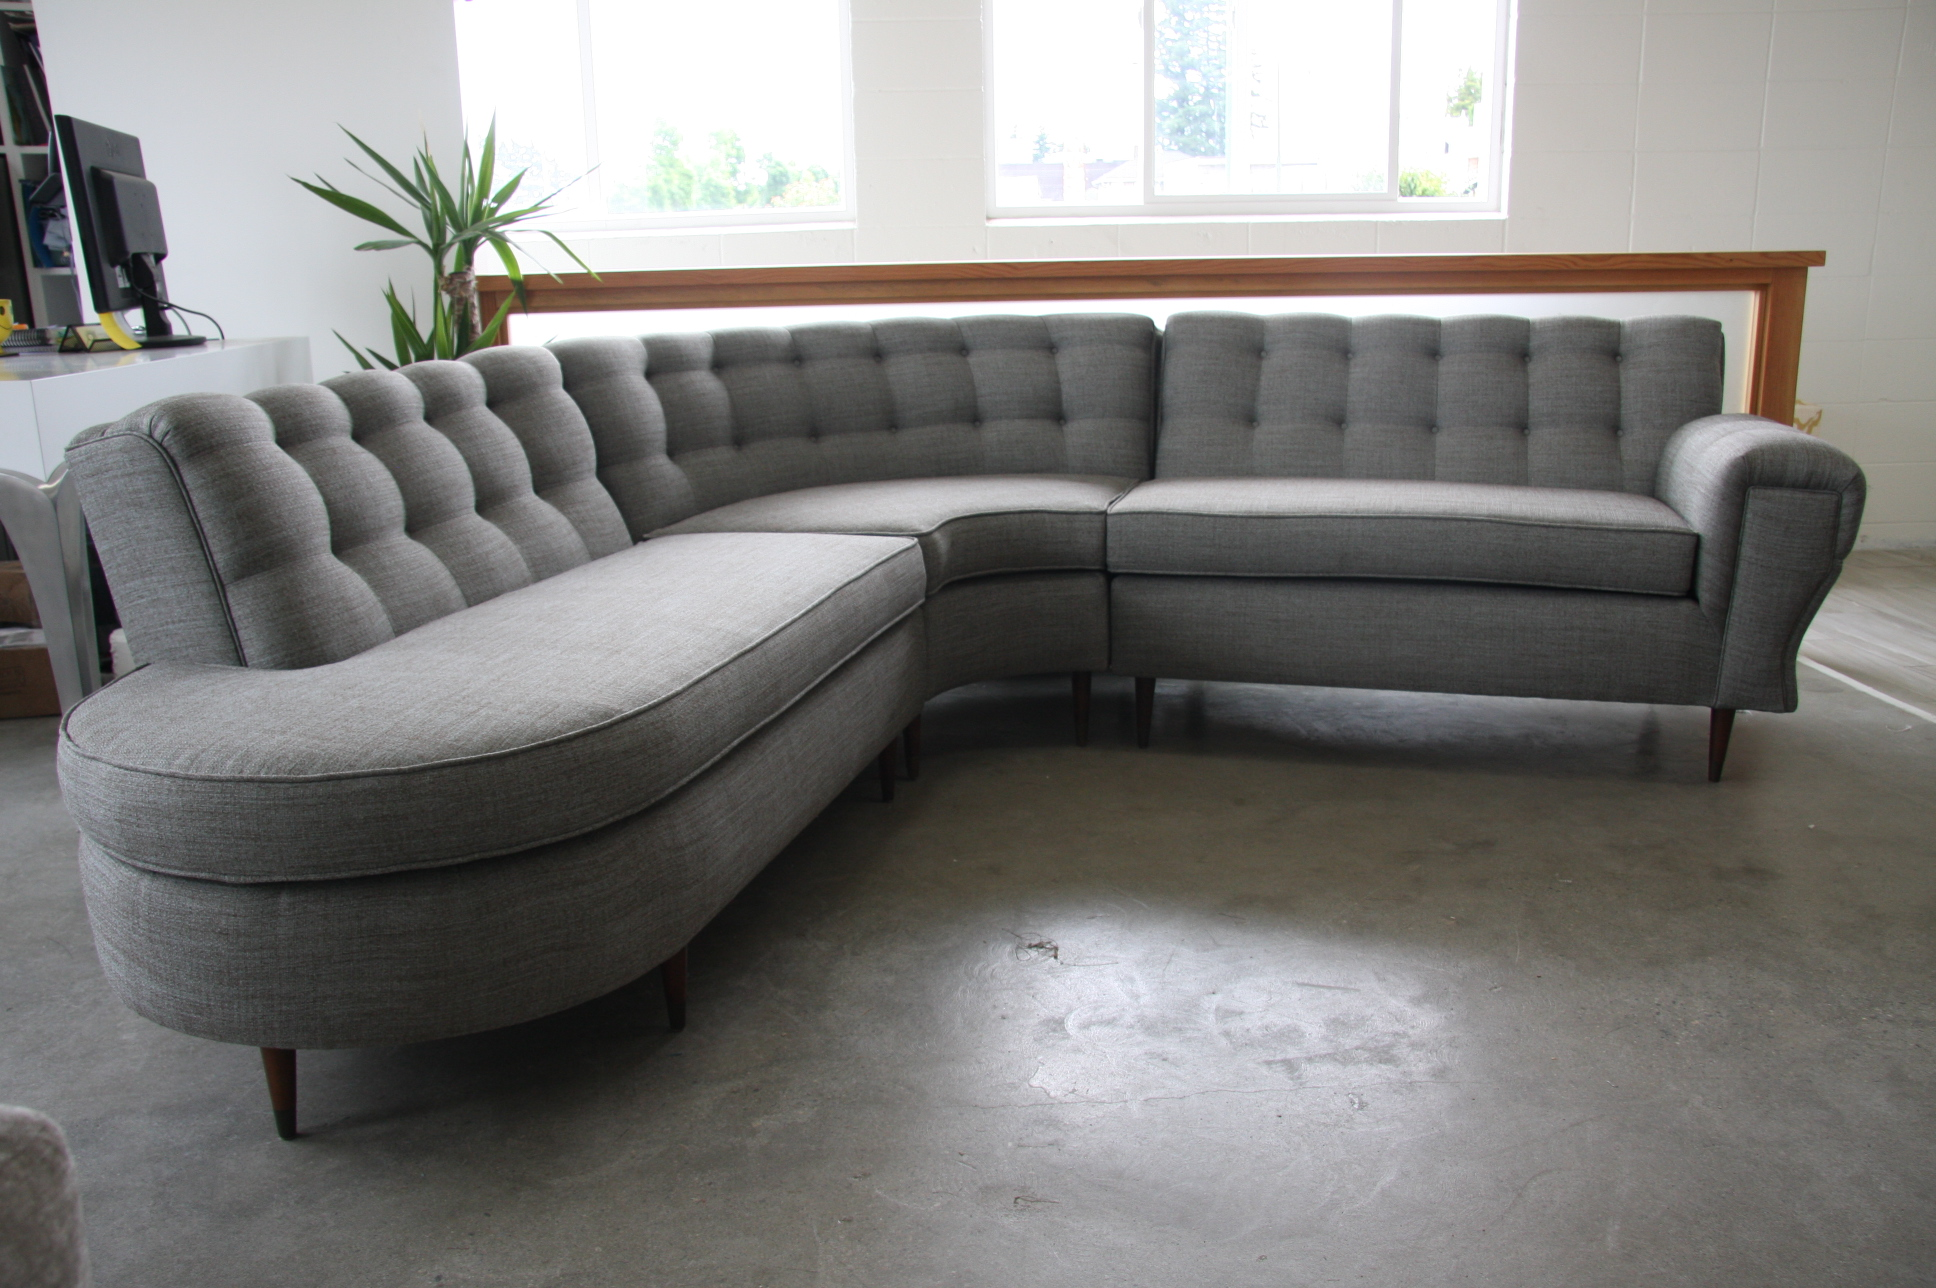 Vintage curve sectional with button tufting and piping trim.